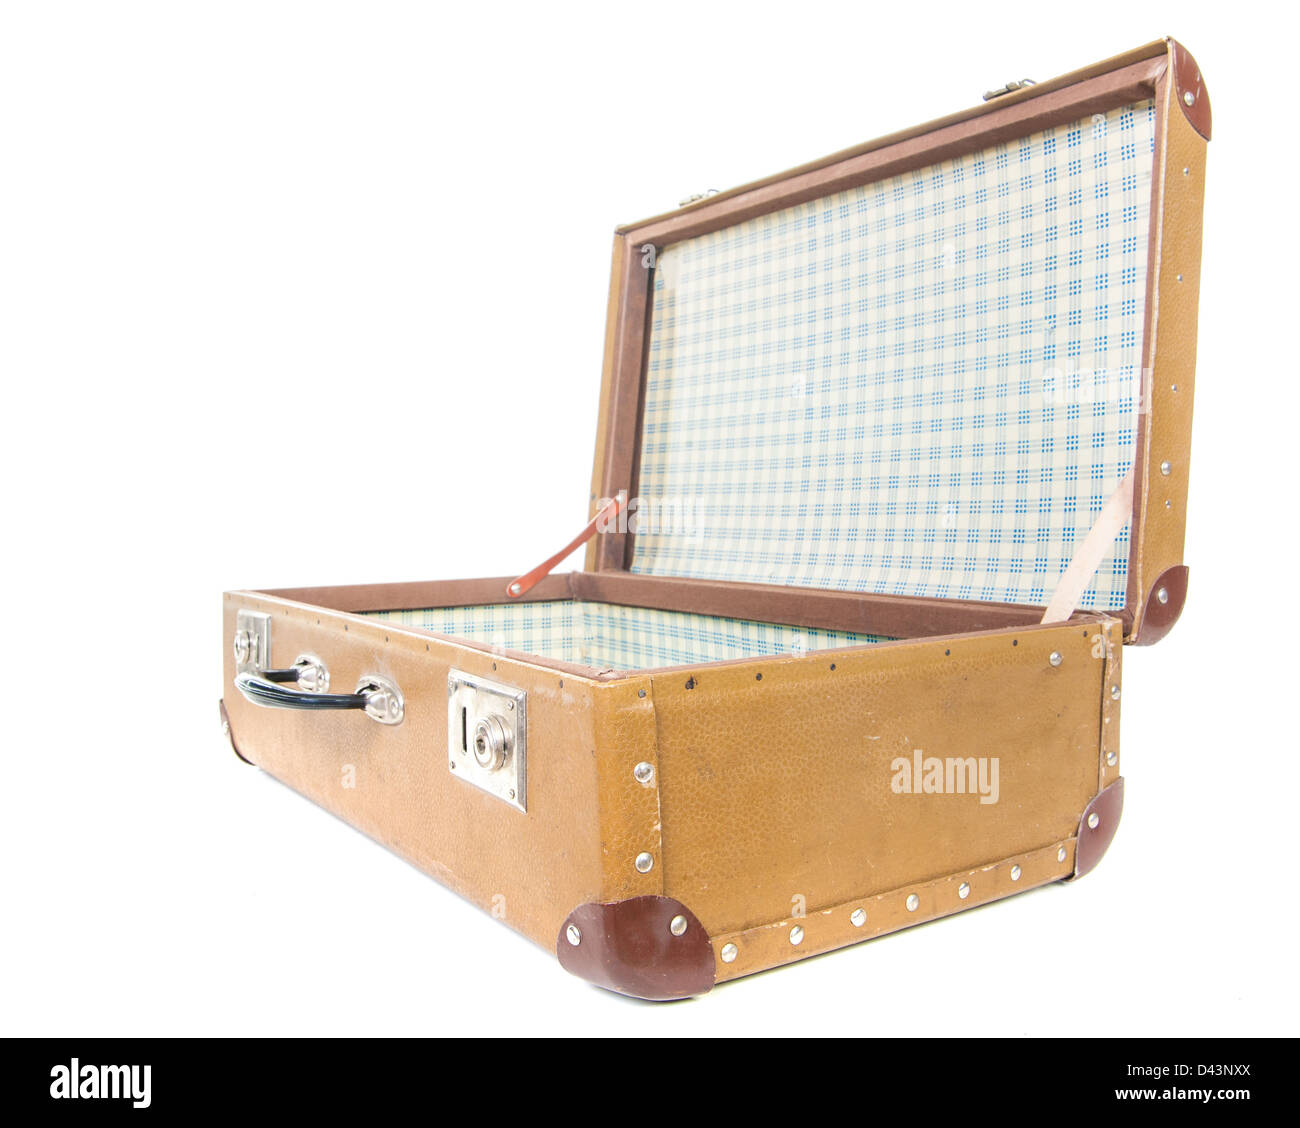 Vintage suitcase. Clipping path included. - Stock Image